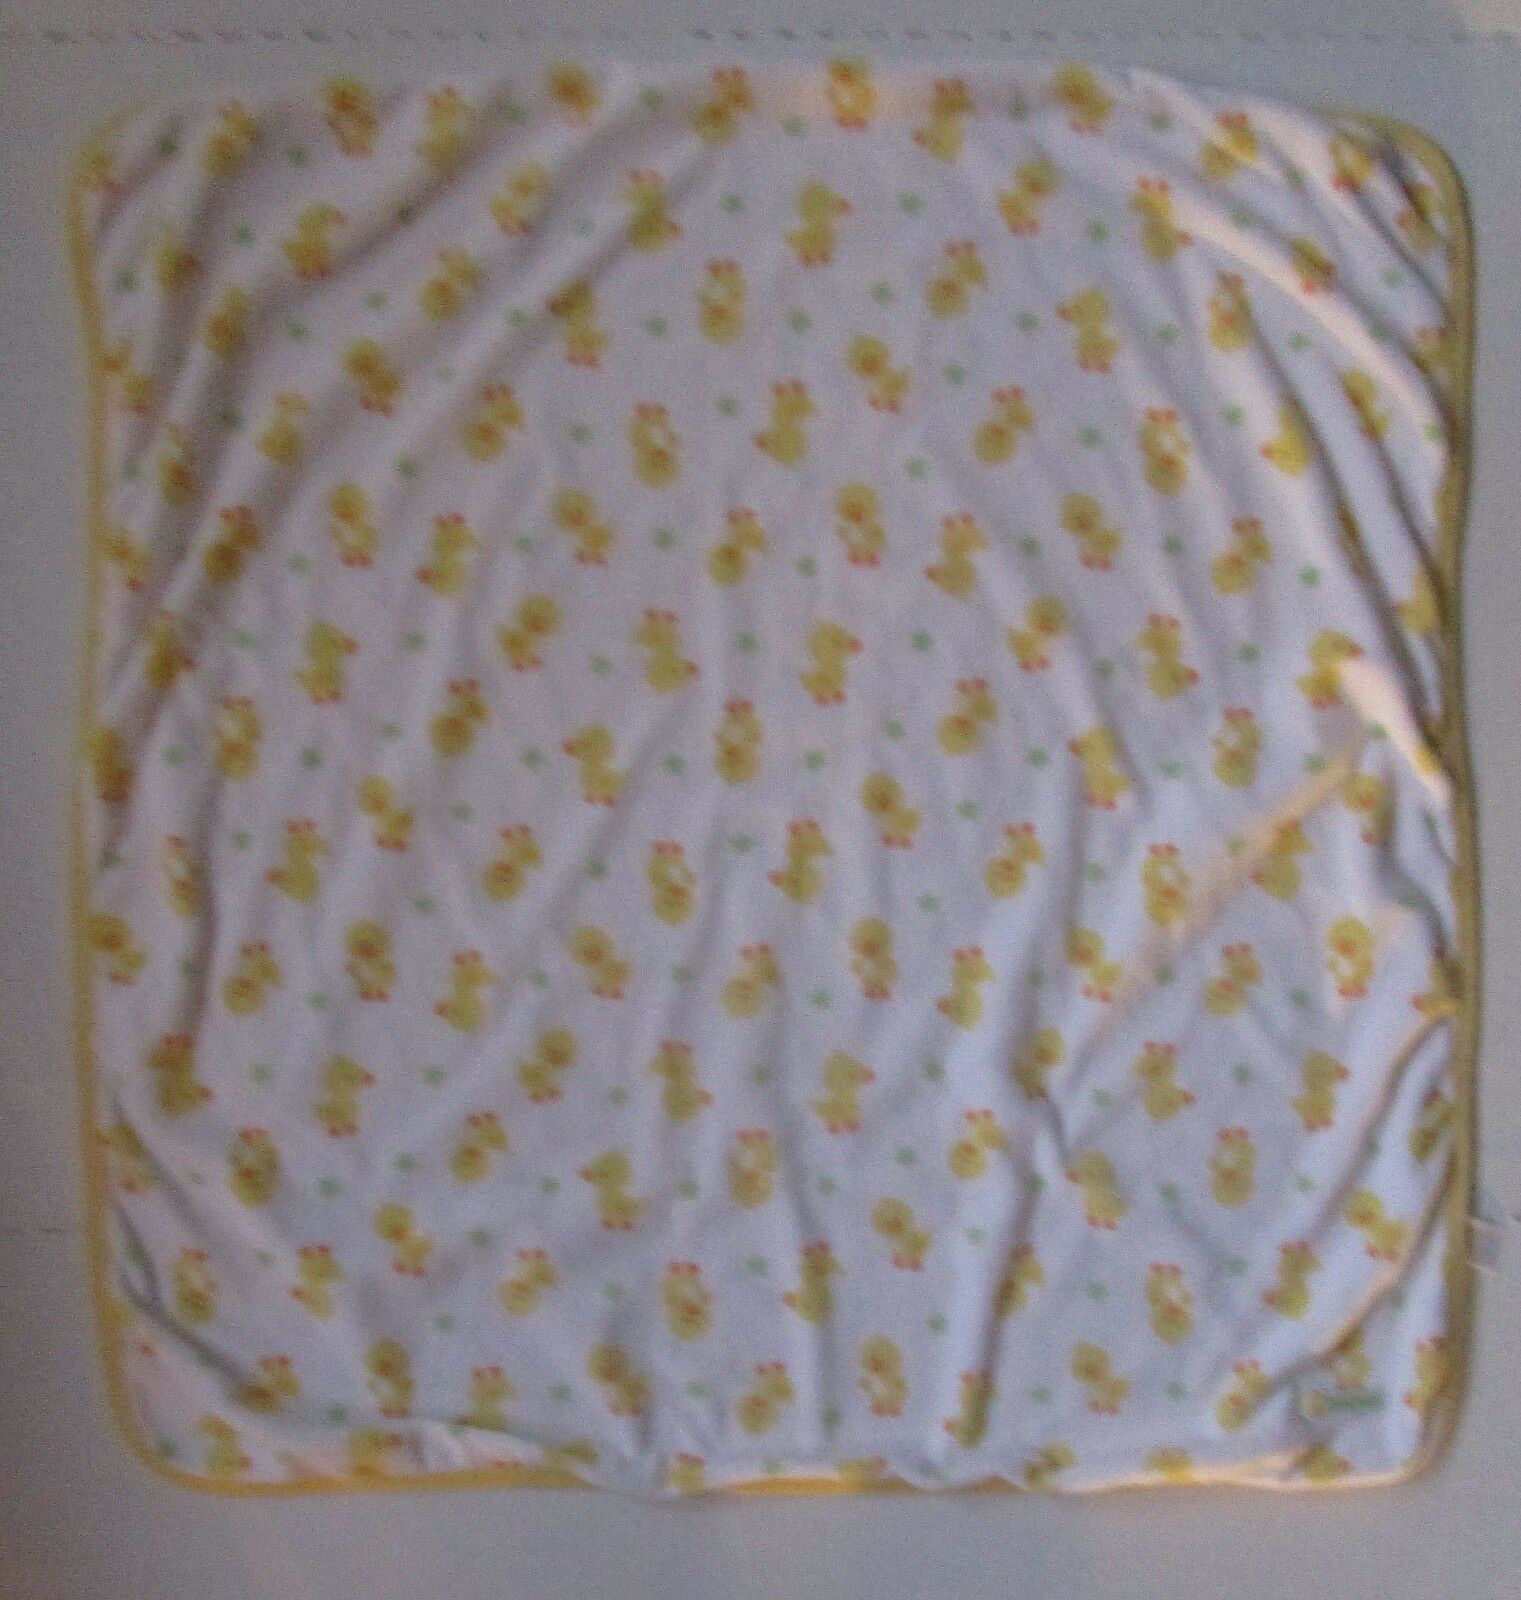 aab51ed1b1 Carters Baby Blanket Yellow Baby Ducks White Plush Rubber Duckies Fleece  Knit